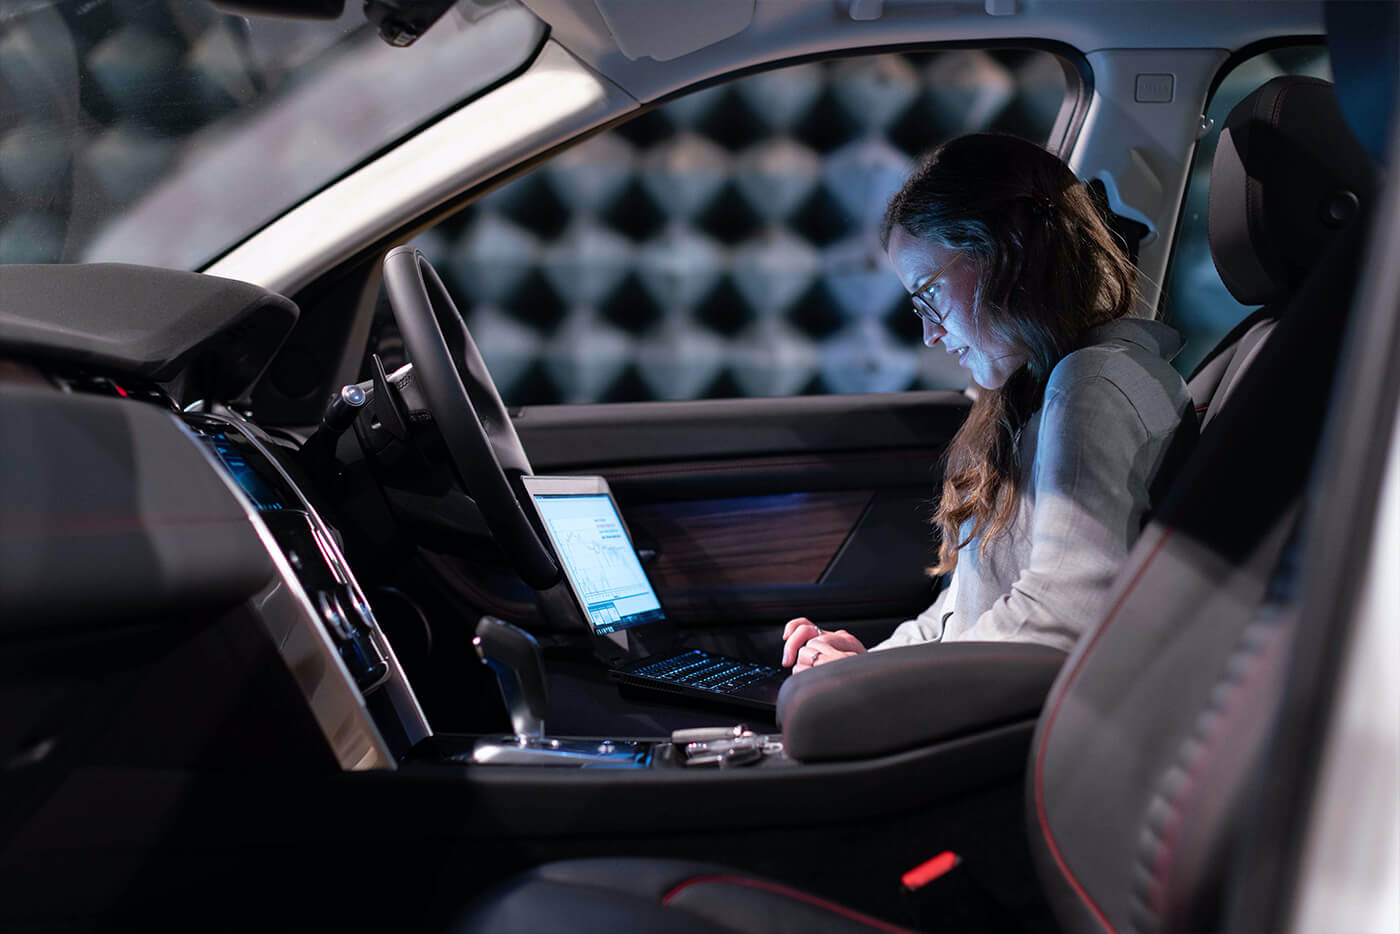 Woman on laptop in car